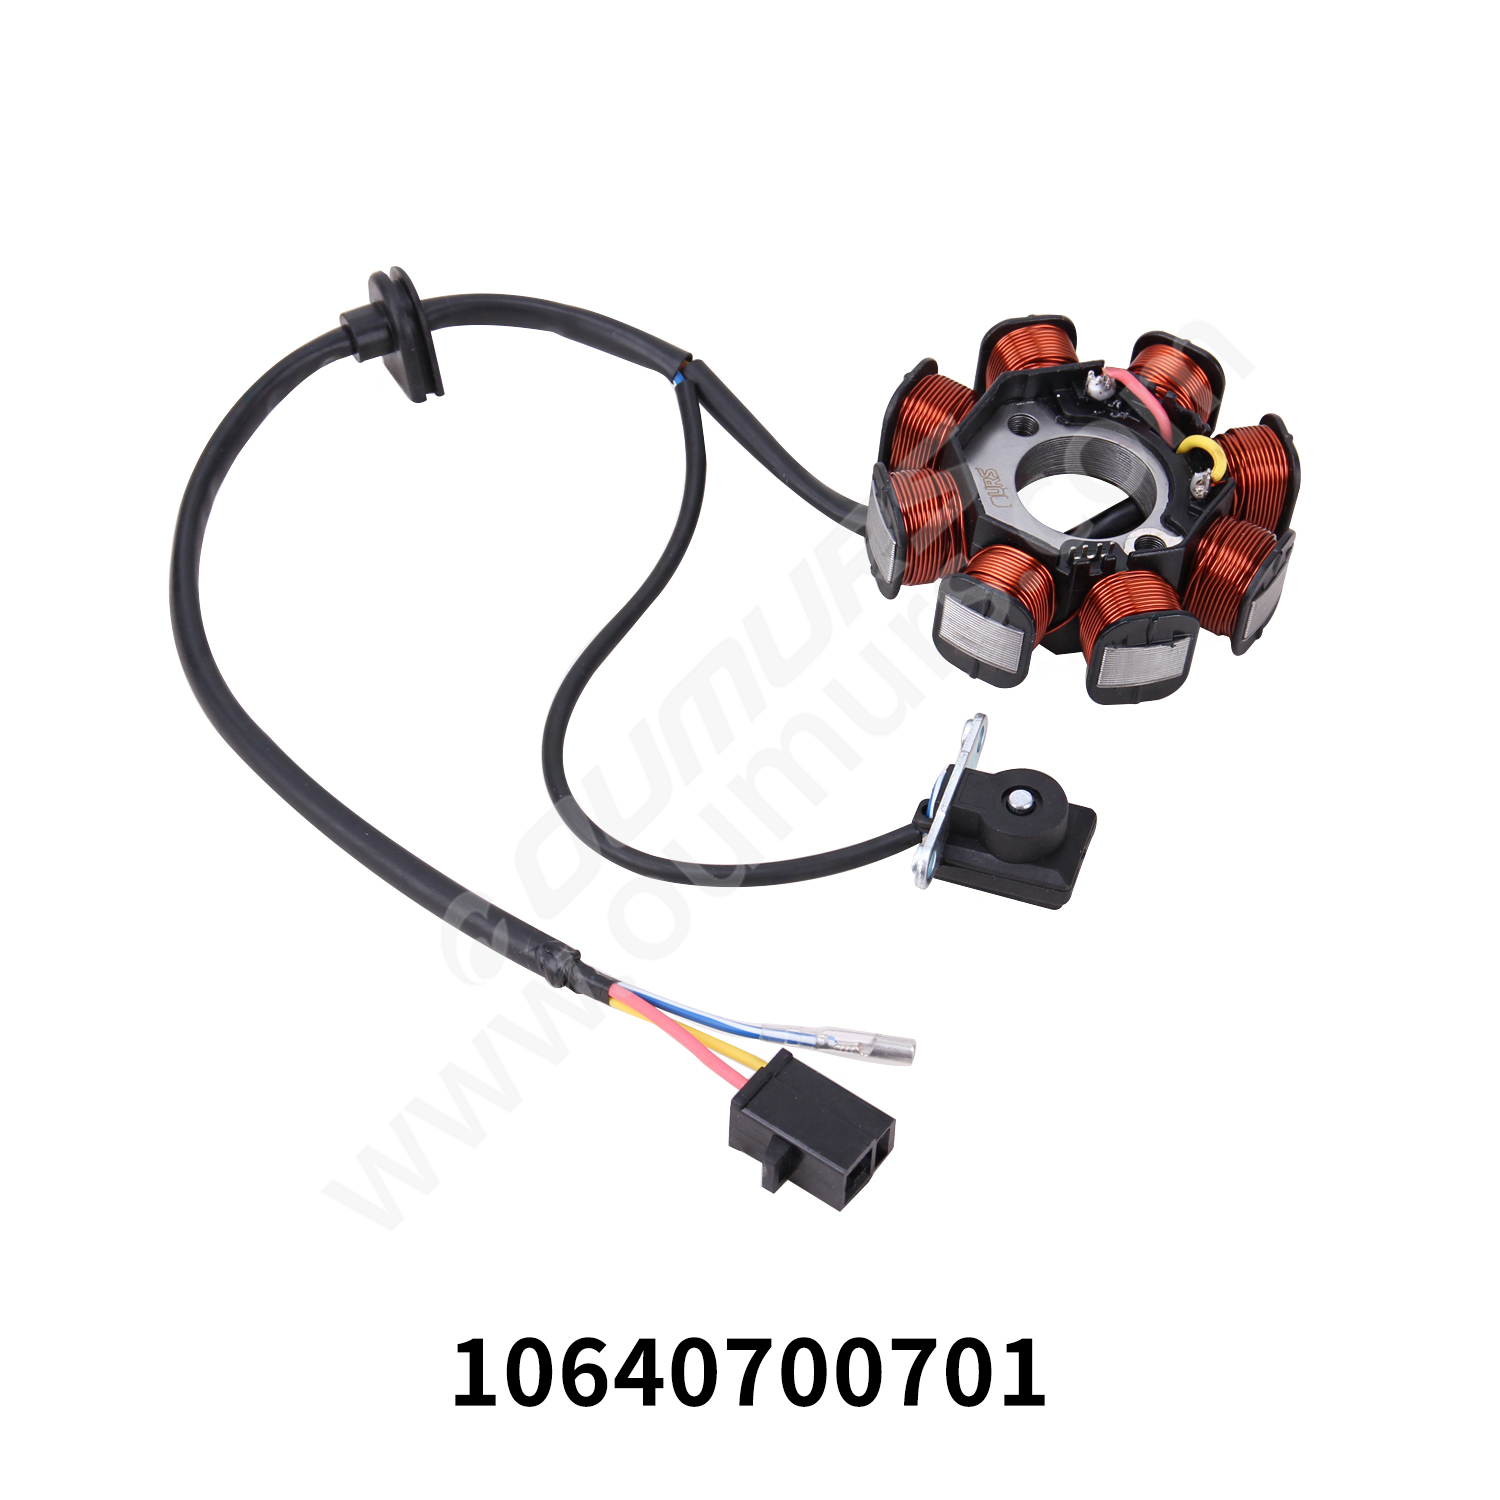 Magneto Coil-Agility 125RS